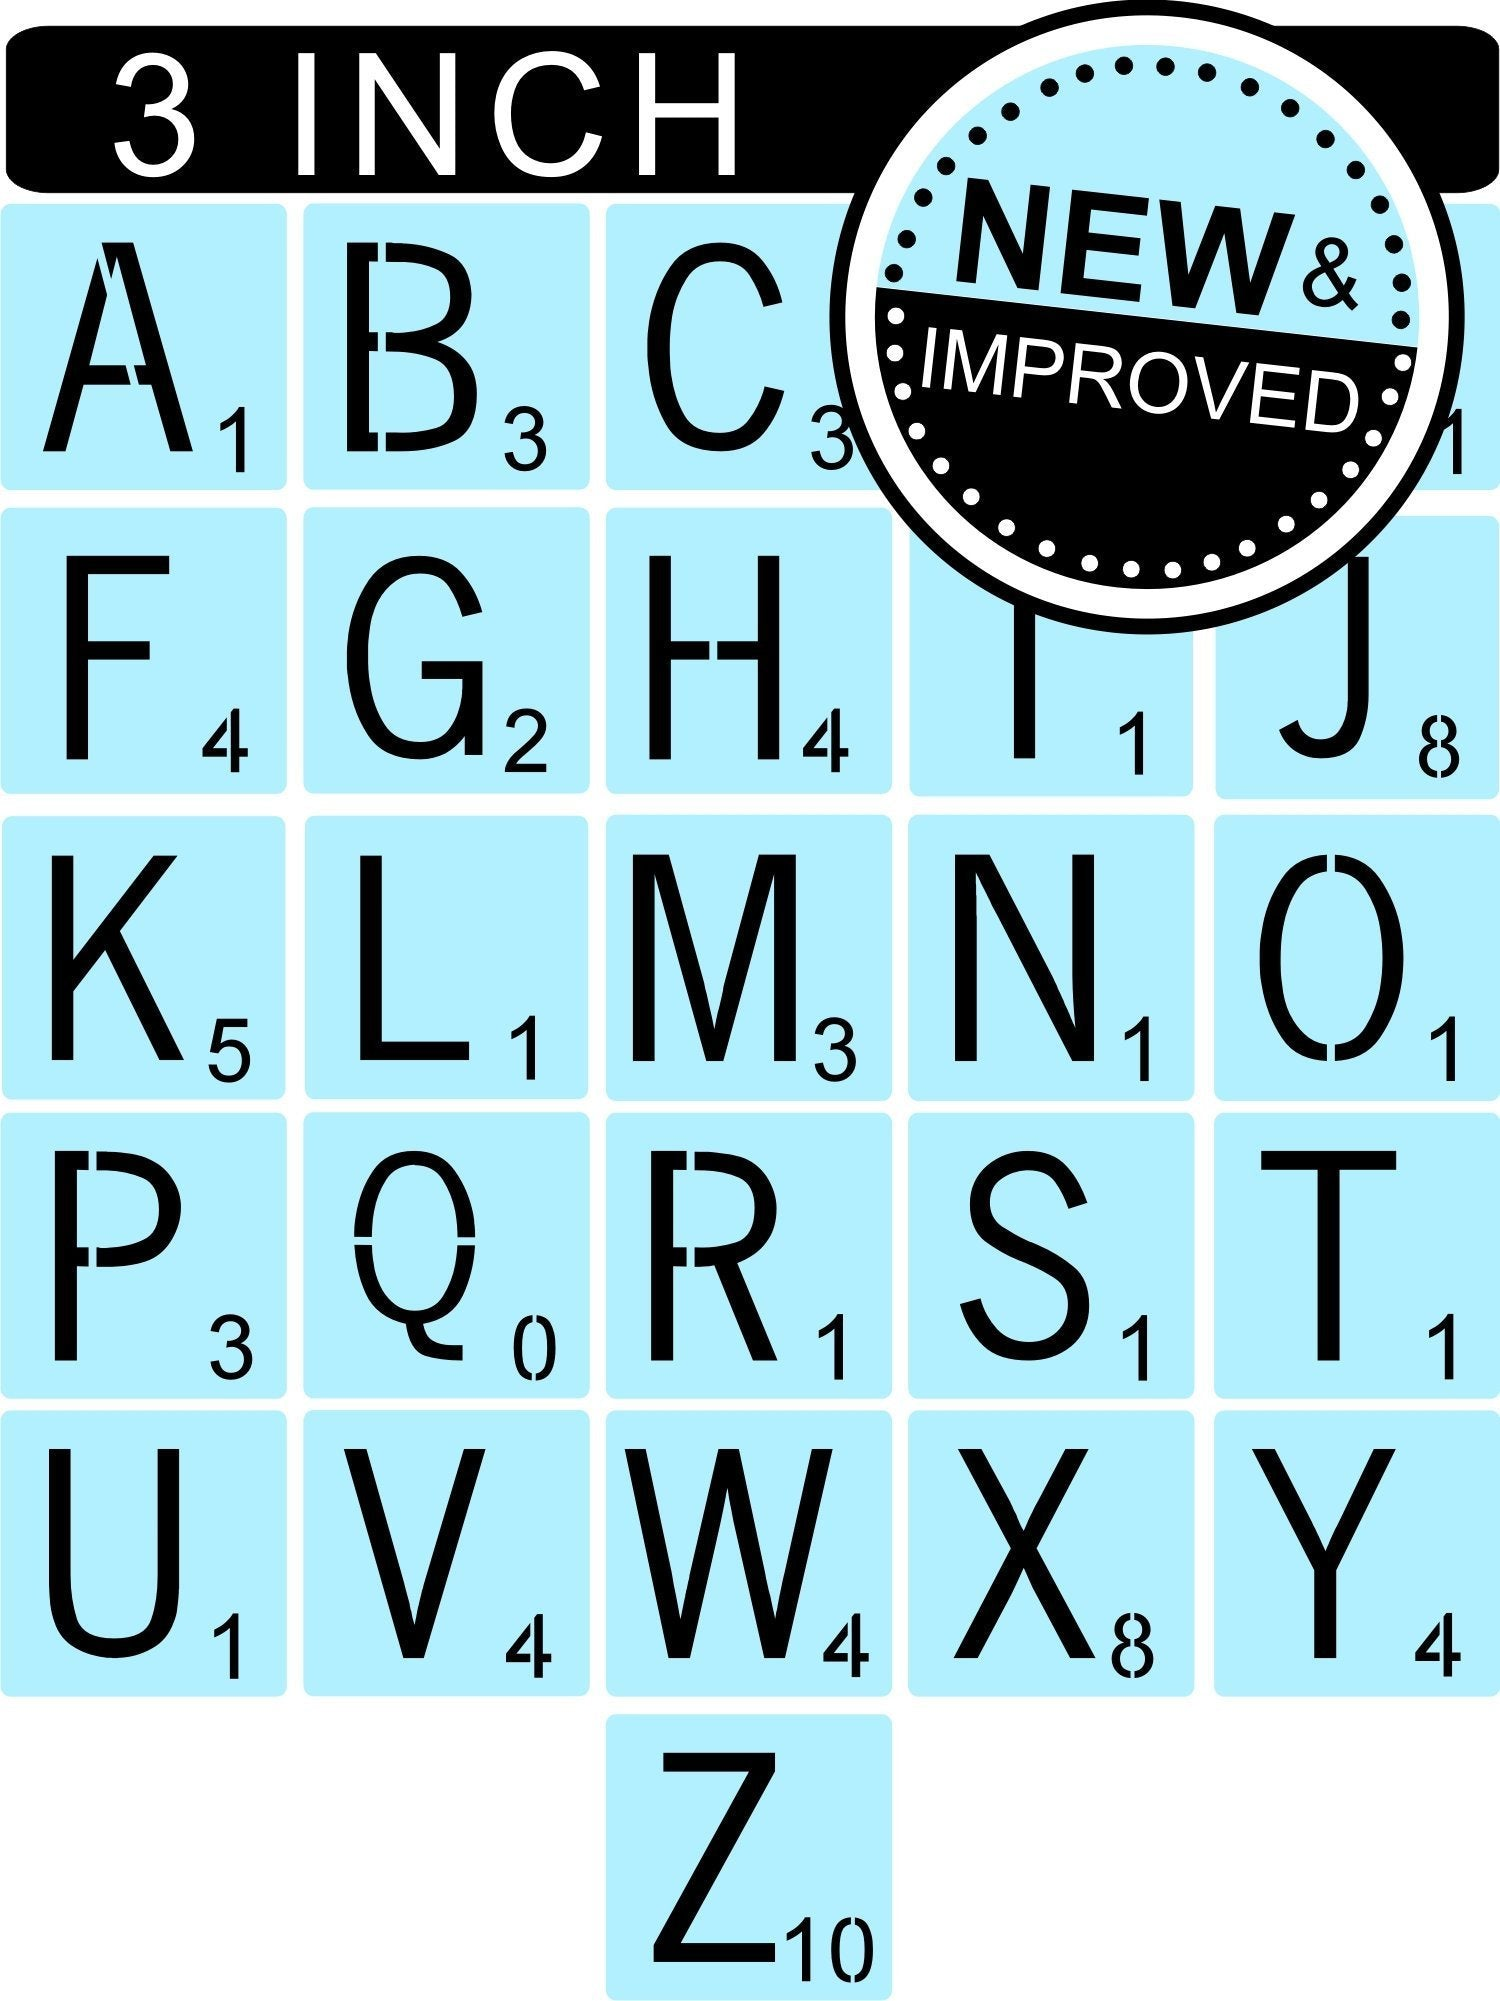 Scrabble Stencils Kit - Reusable - 3 Inch Scrabble Tiles Stencil - Sign Painting